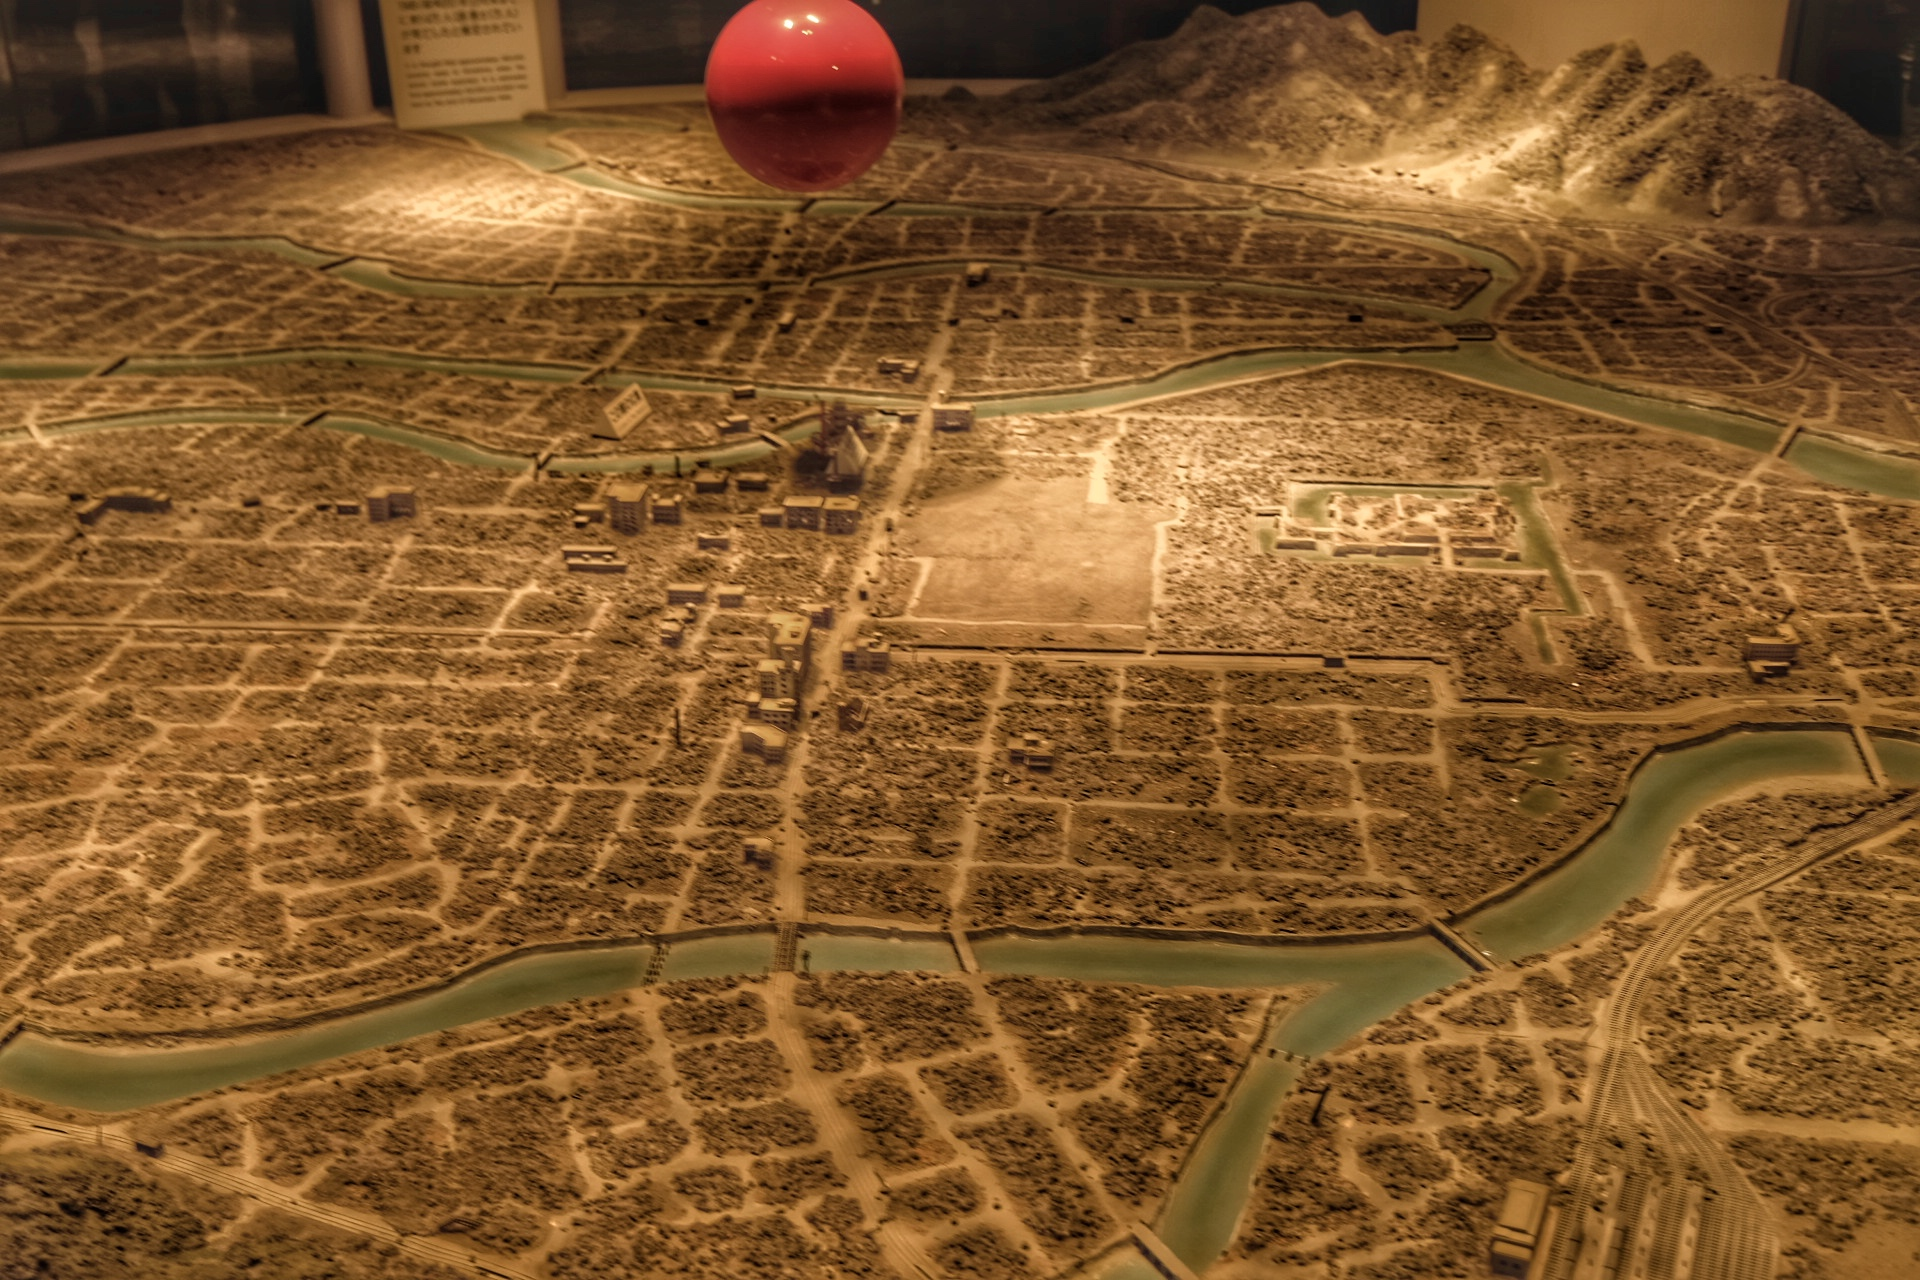 1:1000 scale model of the destruction of Hiroshima by the atomic bomb (Little Boy).